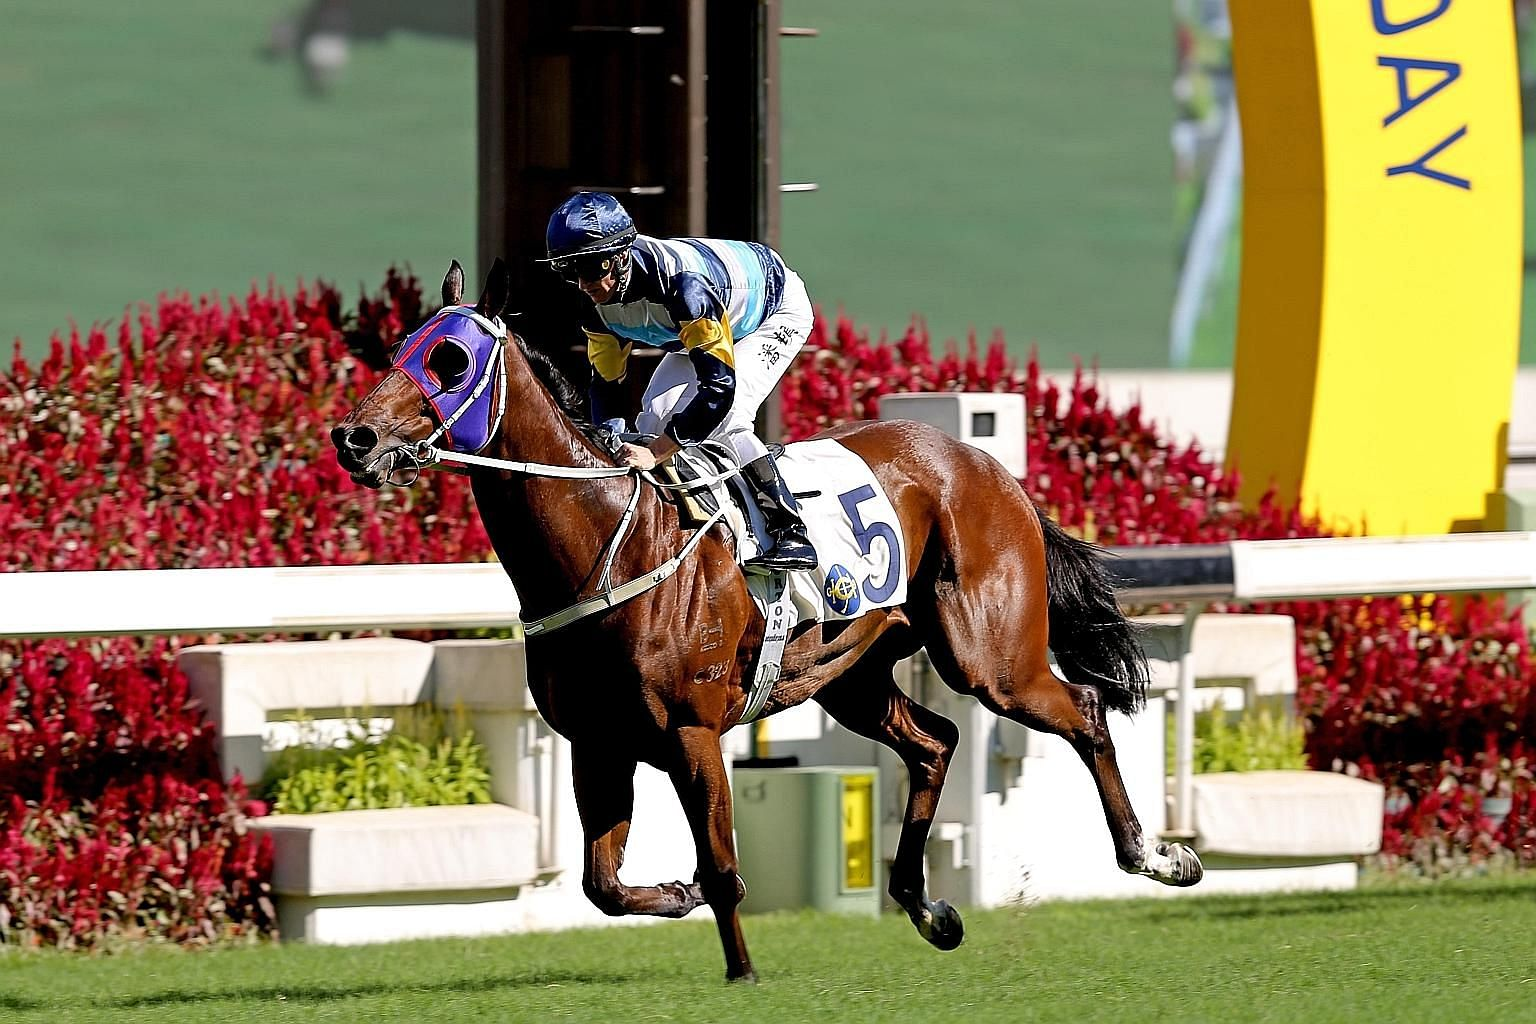 Champion jockey Zac Purton steering Mr Aldan to an easy three-length victory in his last race on July 12. The combination looks hard to topple again in tomorrow's Race 4 at Sha Tin.